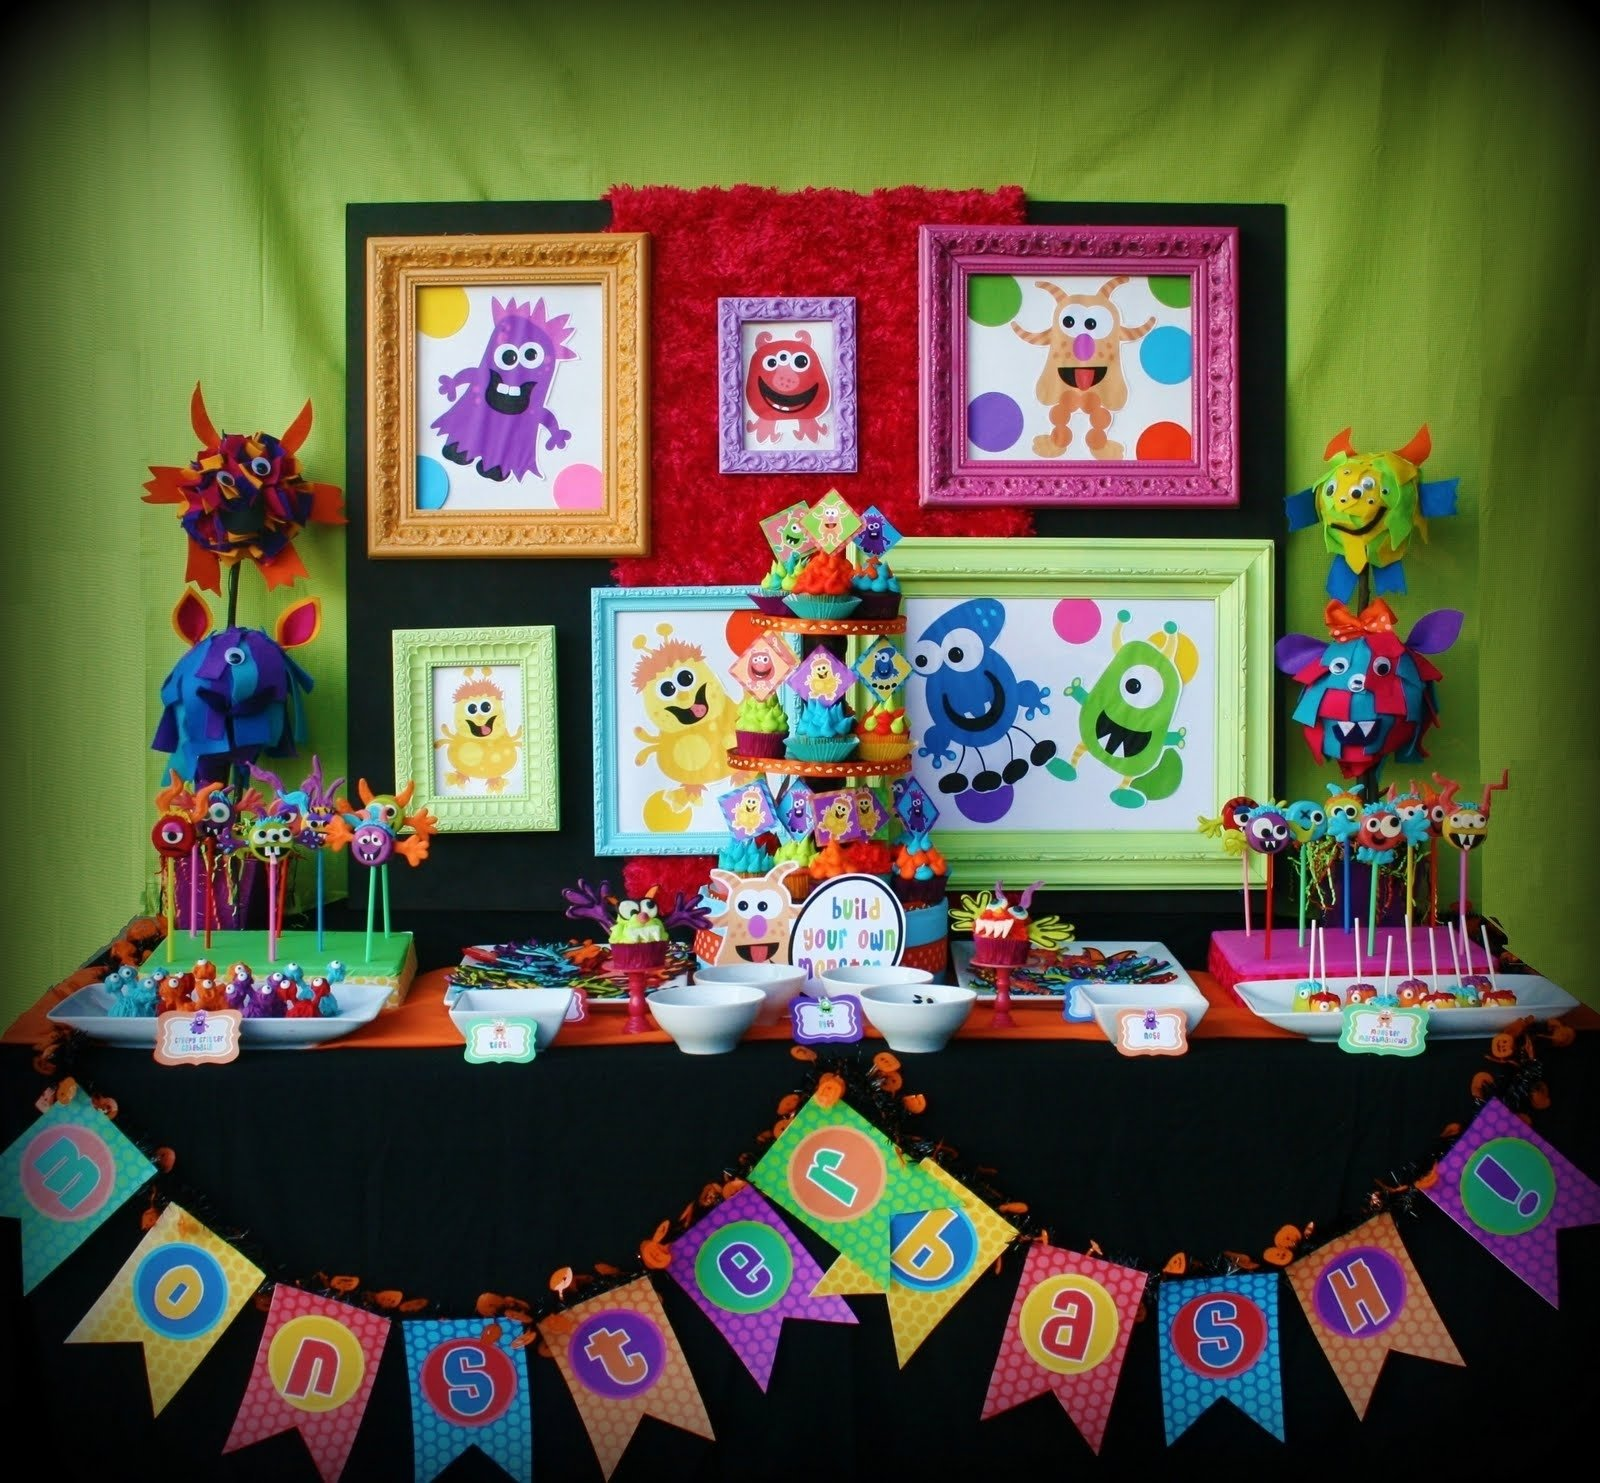 10 Stunning Cheap Kids Birthday Party Ideas 50 awesome boys birthday party ideas i heart naptime 39 2021